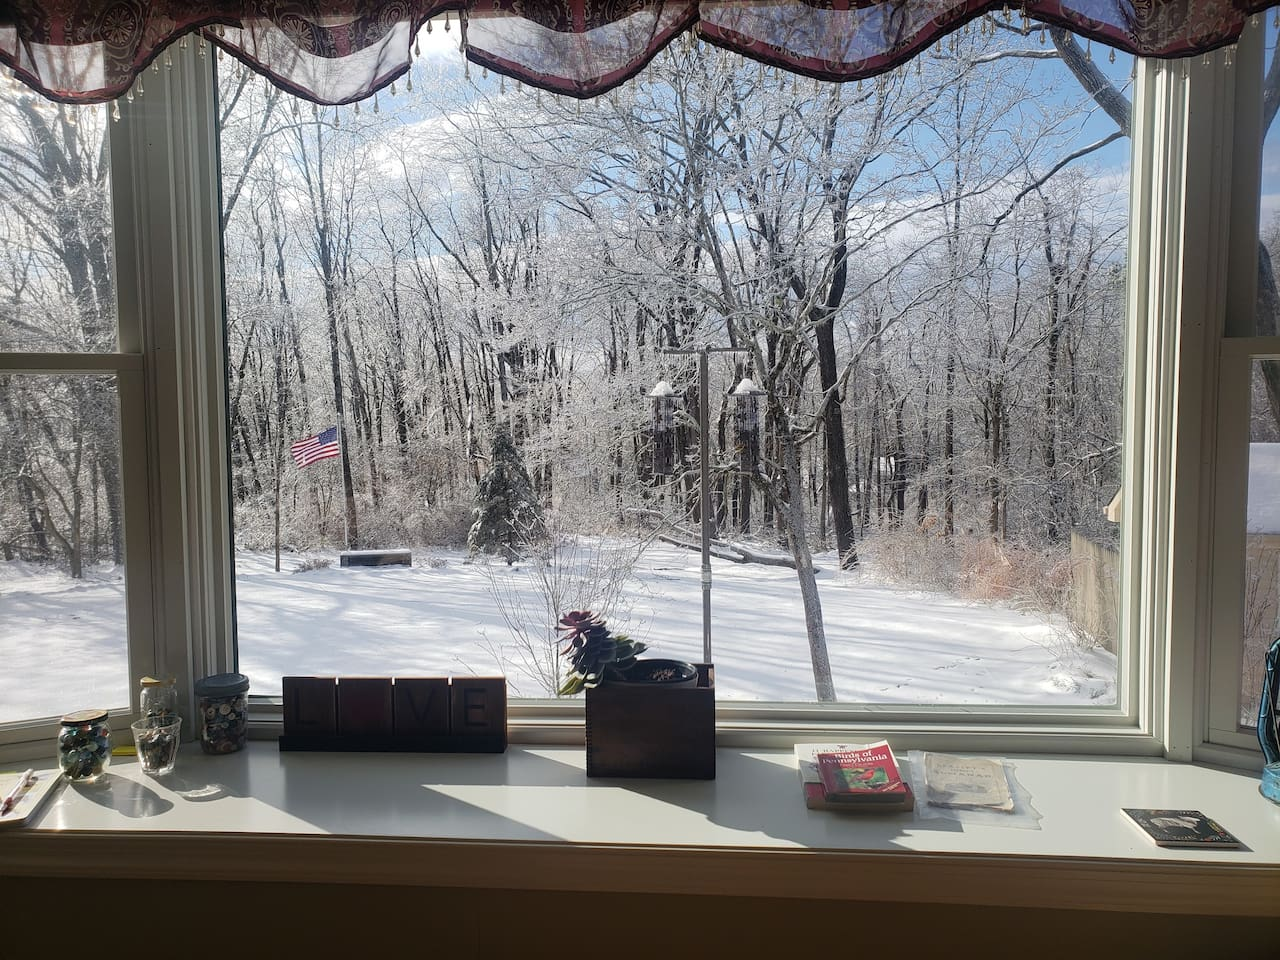 Welcome winter! Inside the oasis it is cozy and warm with nice views after an ice storm places beautiful glitter  on  everything.